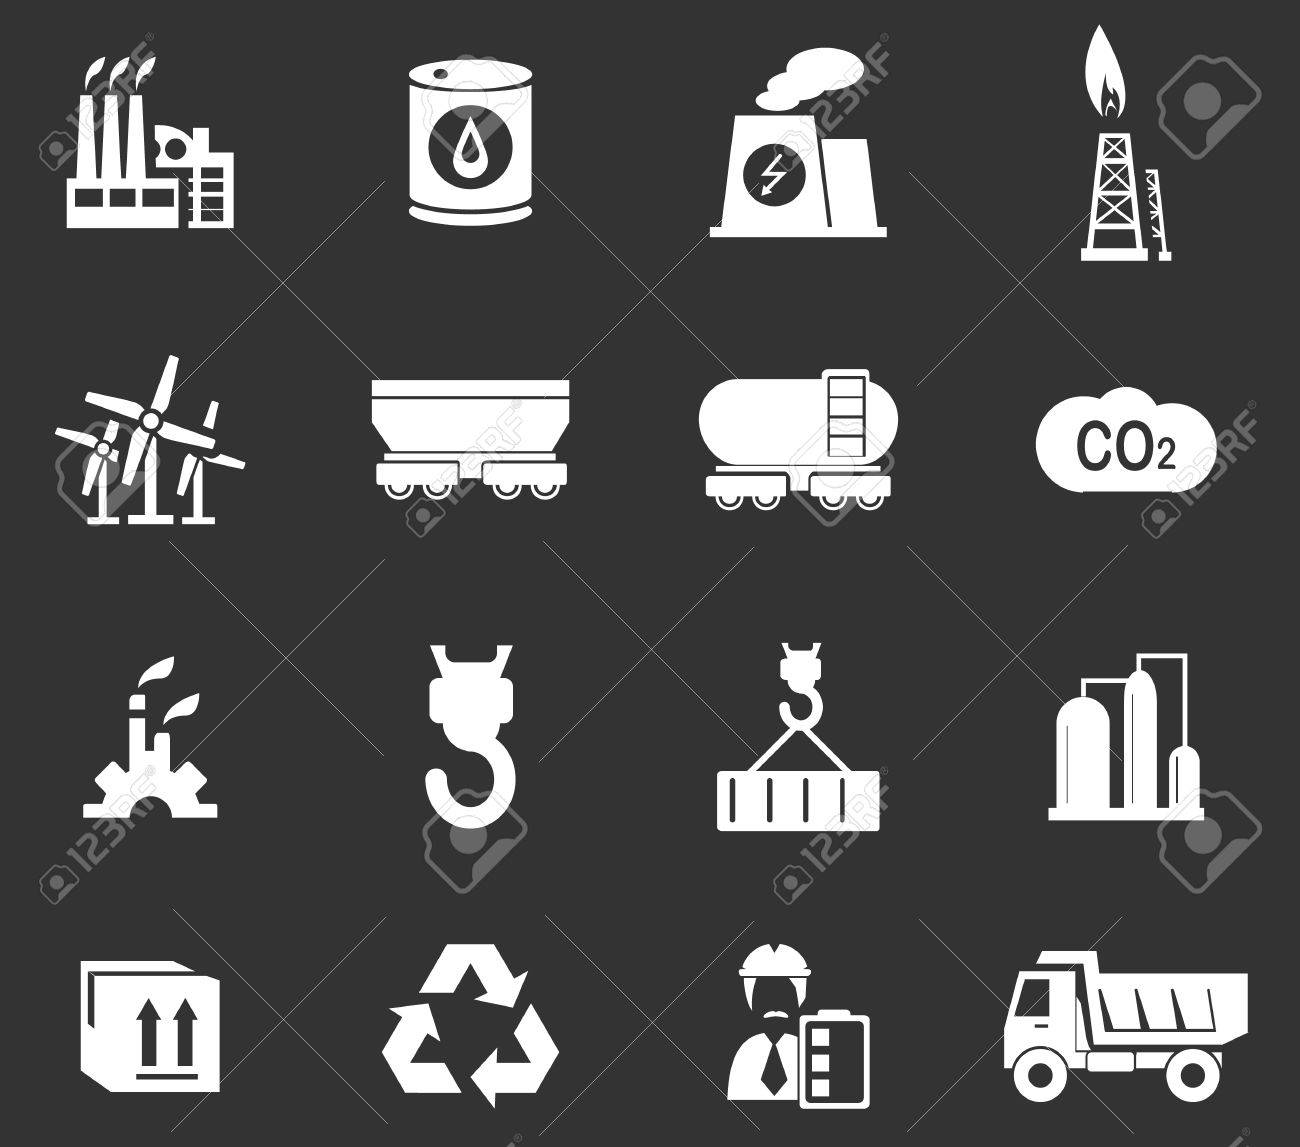 Industry simply icons for web and user interfaces - 51770918